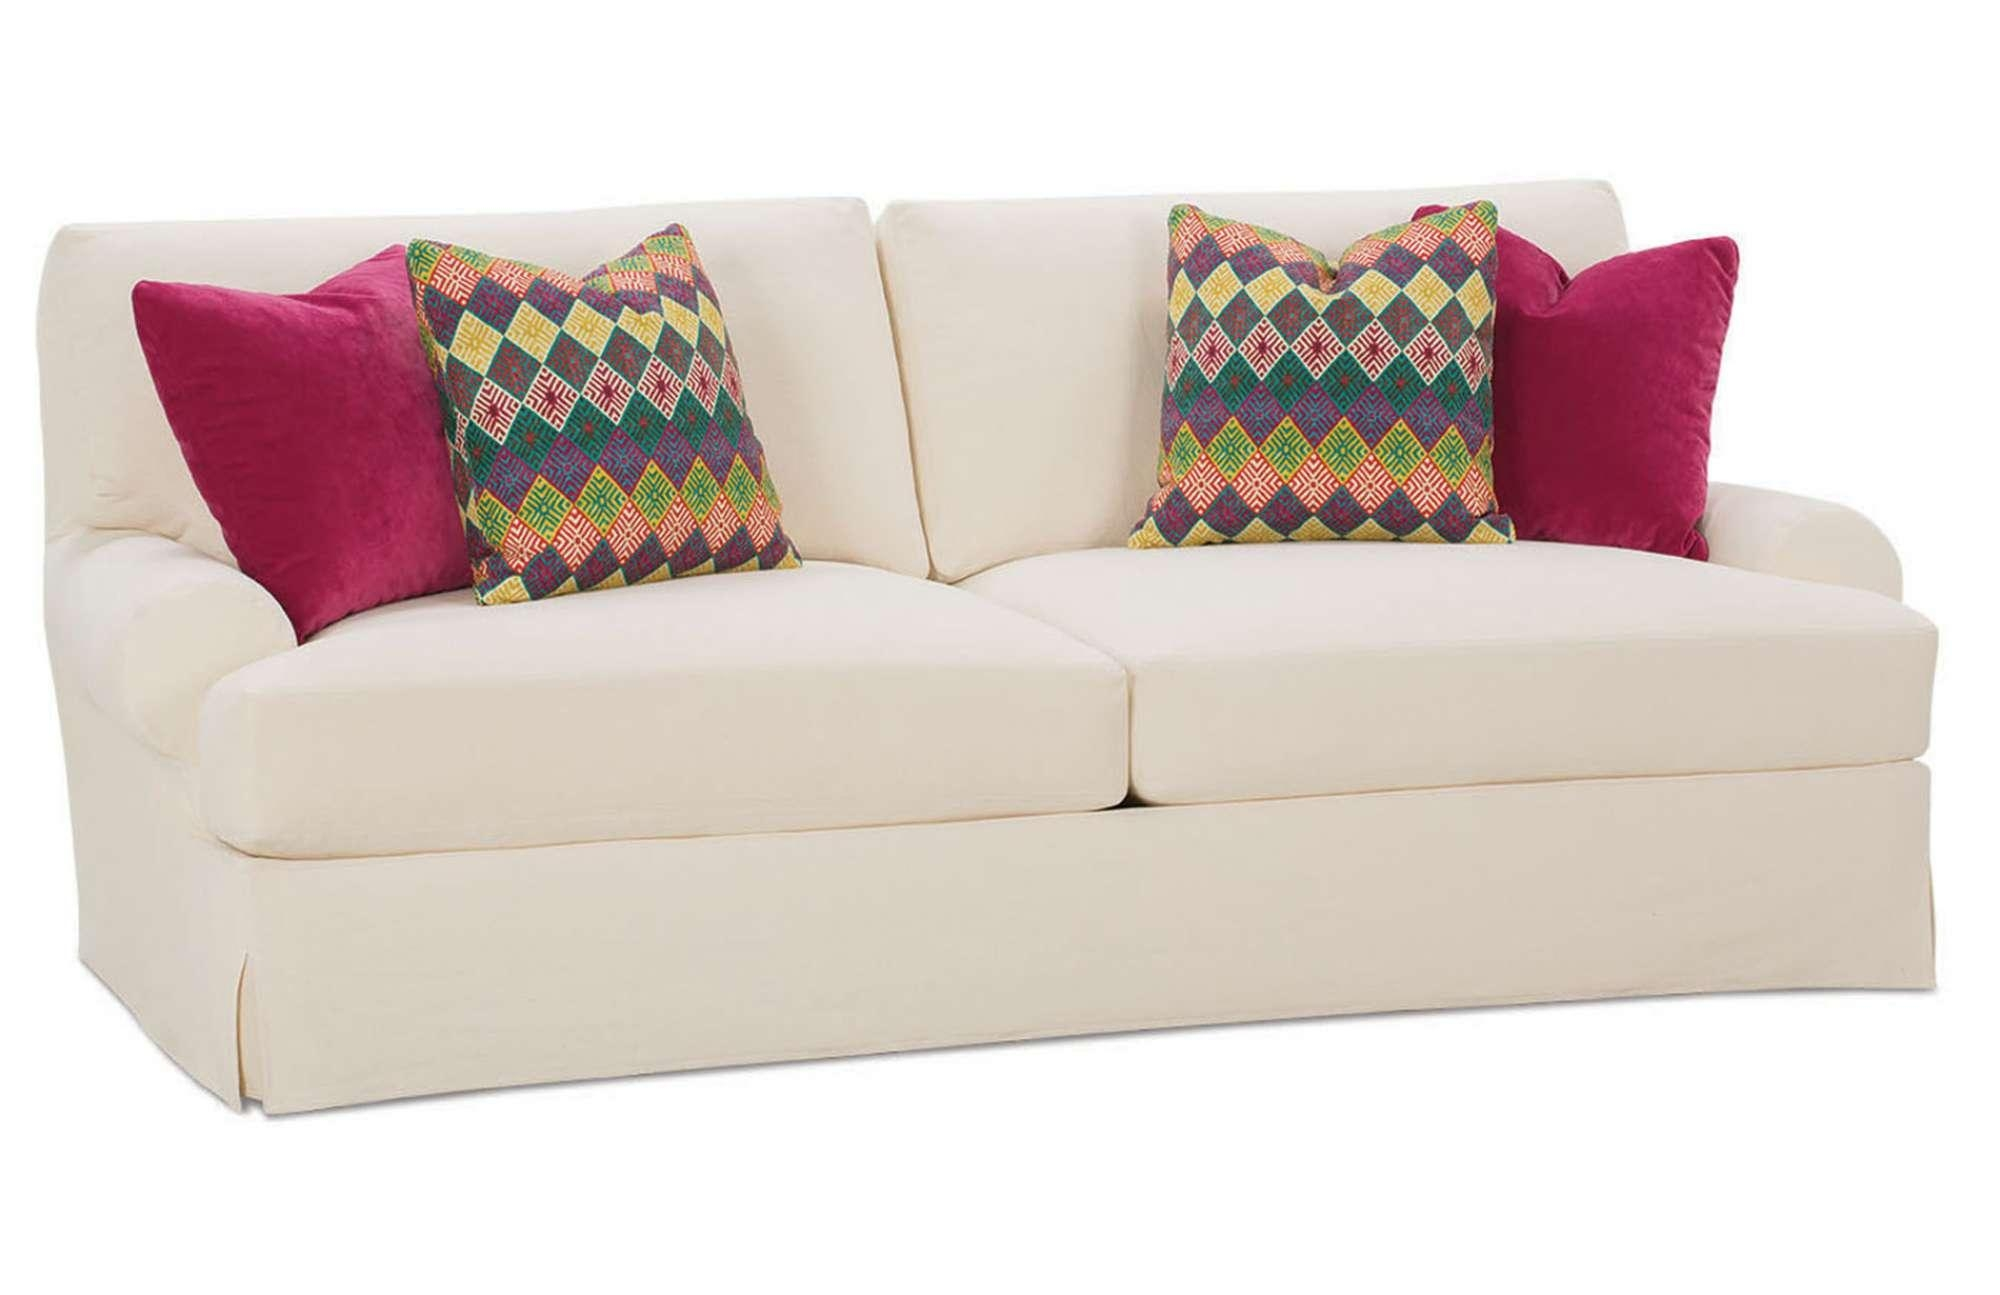 Sofas : Magnificent Extra Long Sofa Slipcover Large Couch Intended For Large Sofa Slipcovers (Image 16 of 23)